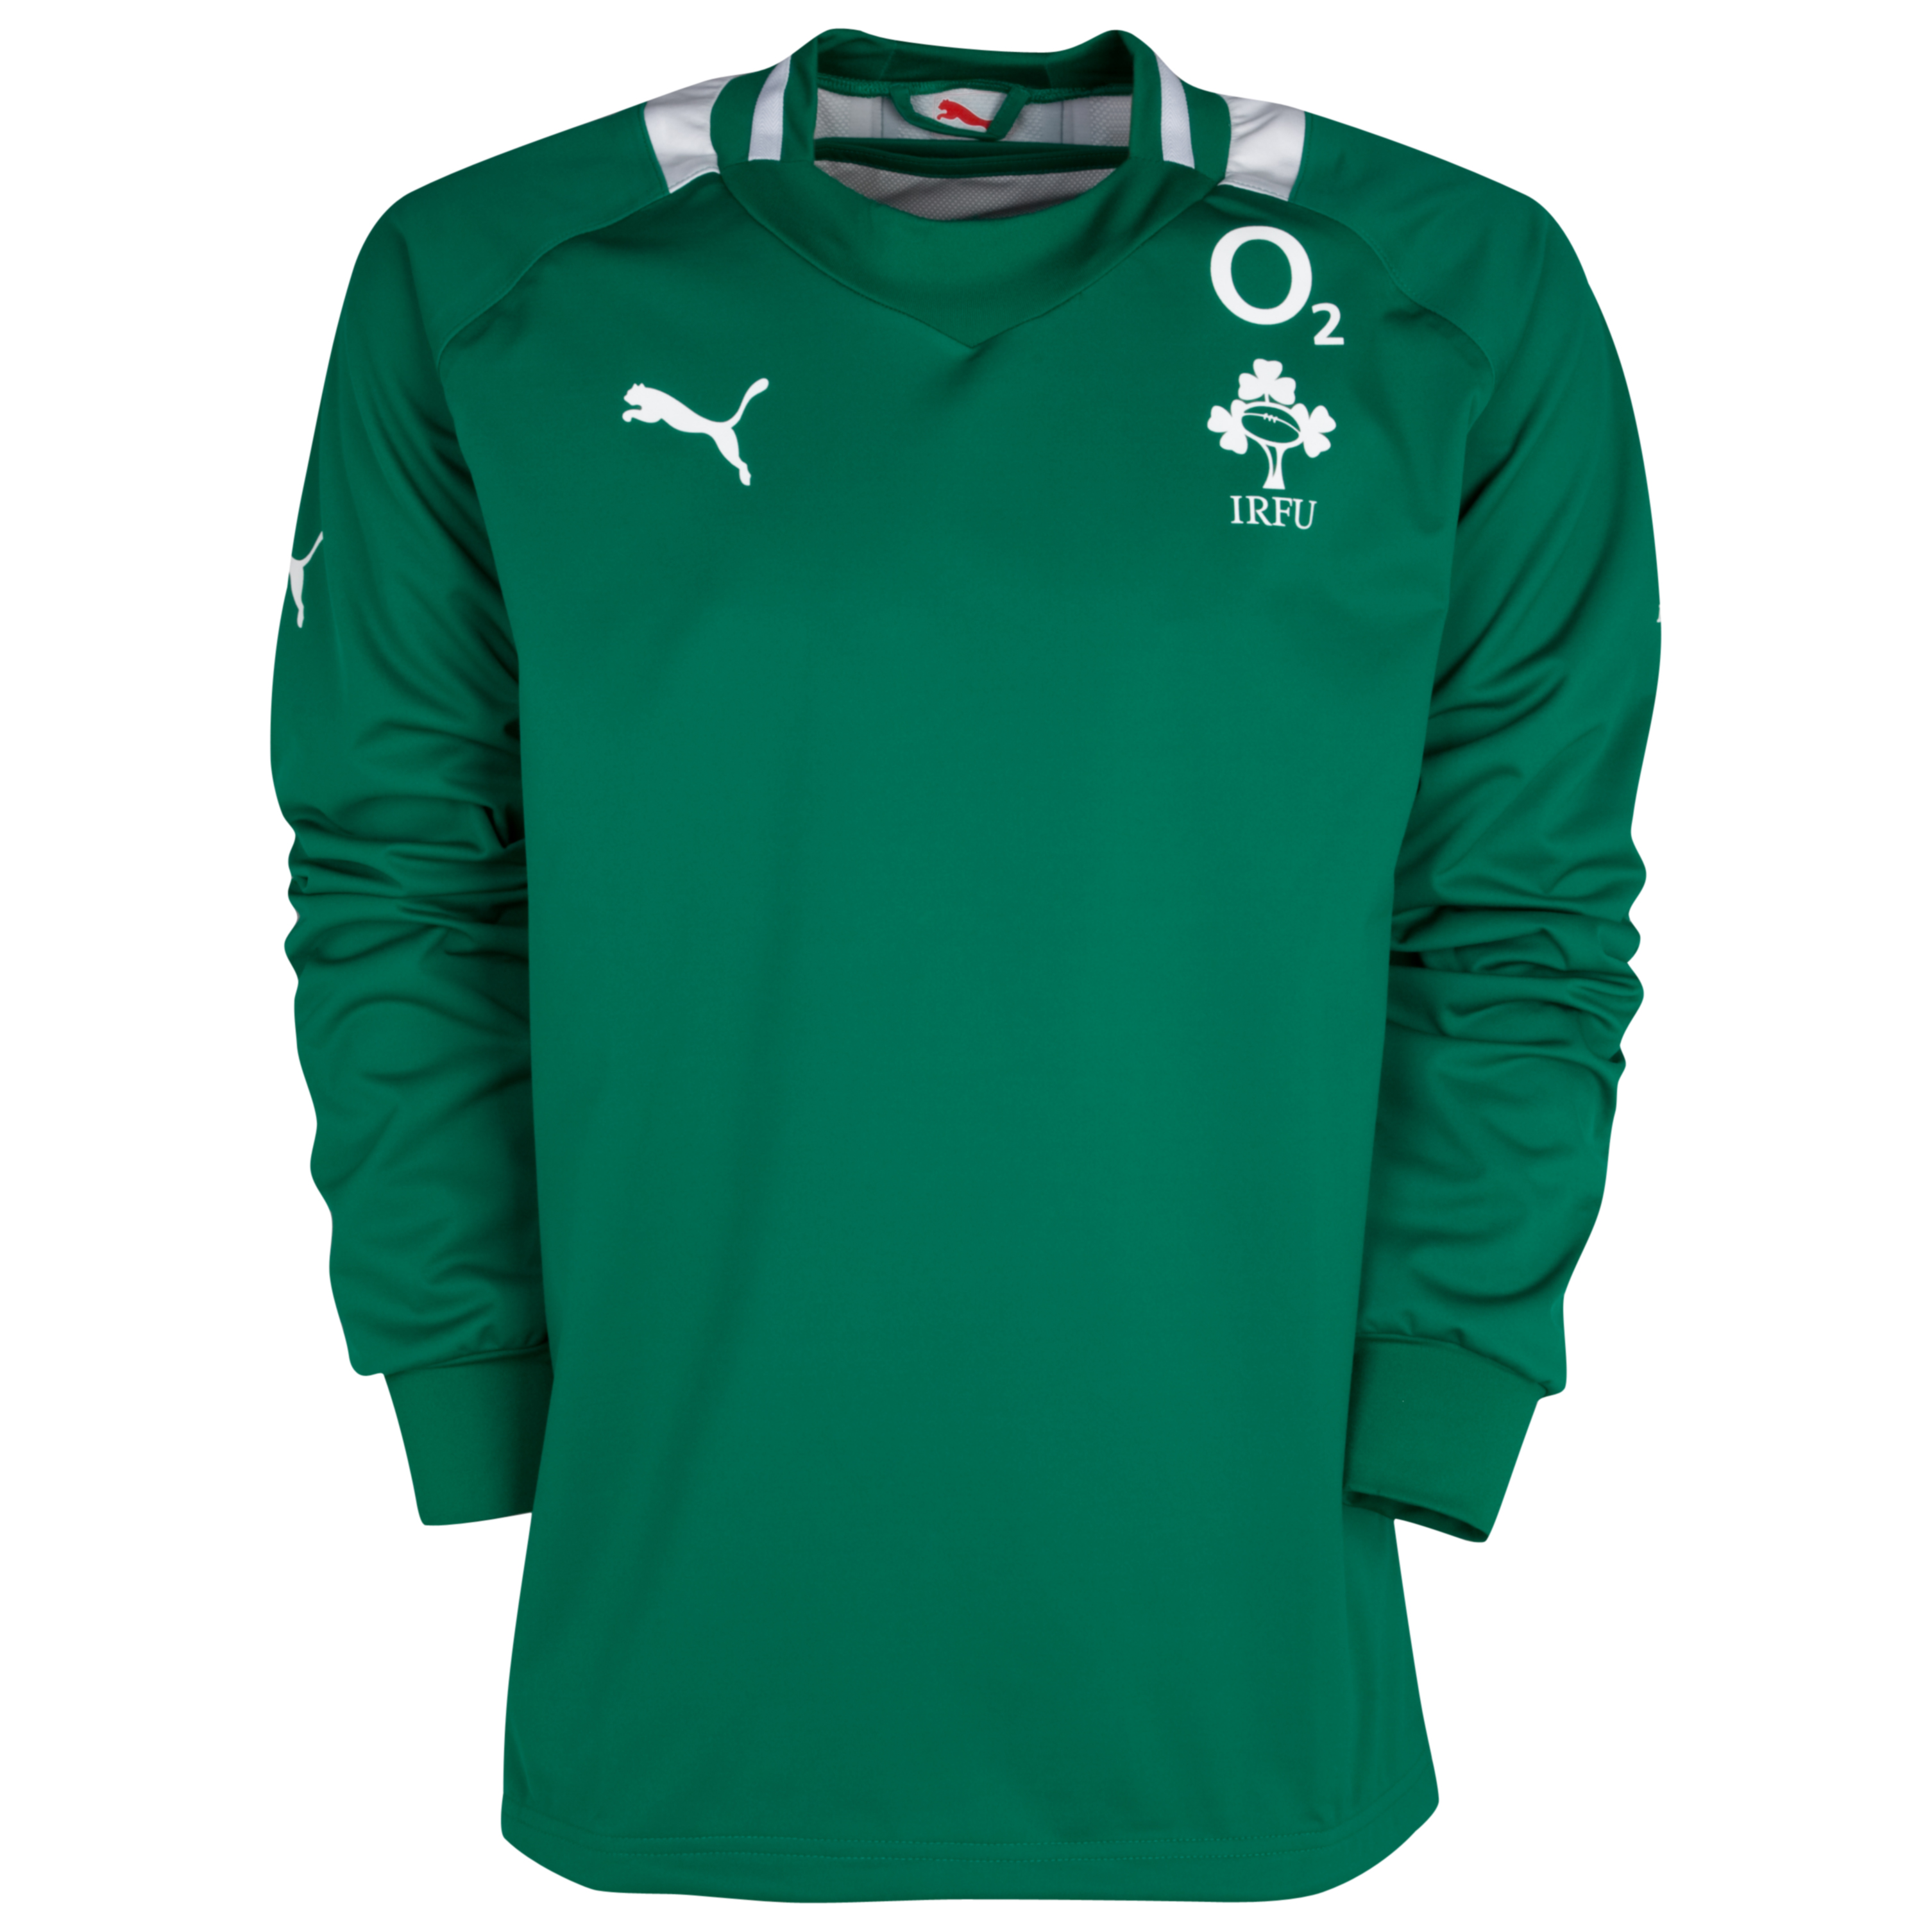 Ireland Rugby Anthem Top - Power Green/White. for 40€